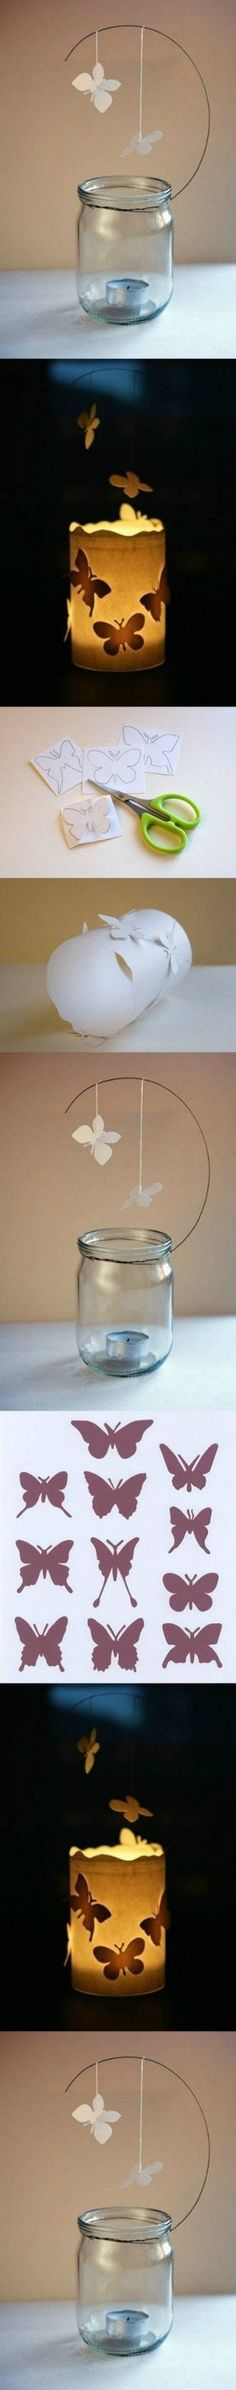 DIY Butterfly Candle Decor Ideas DIY Projects